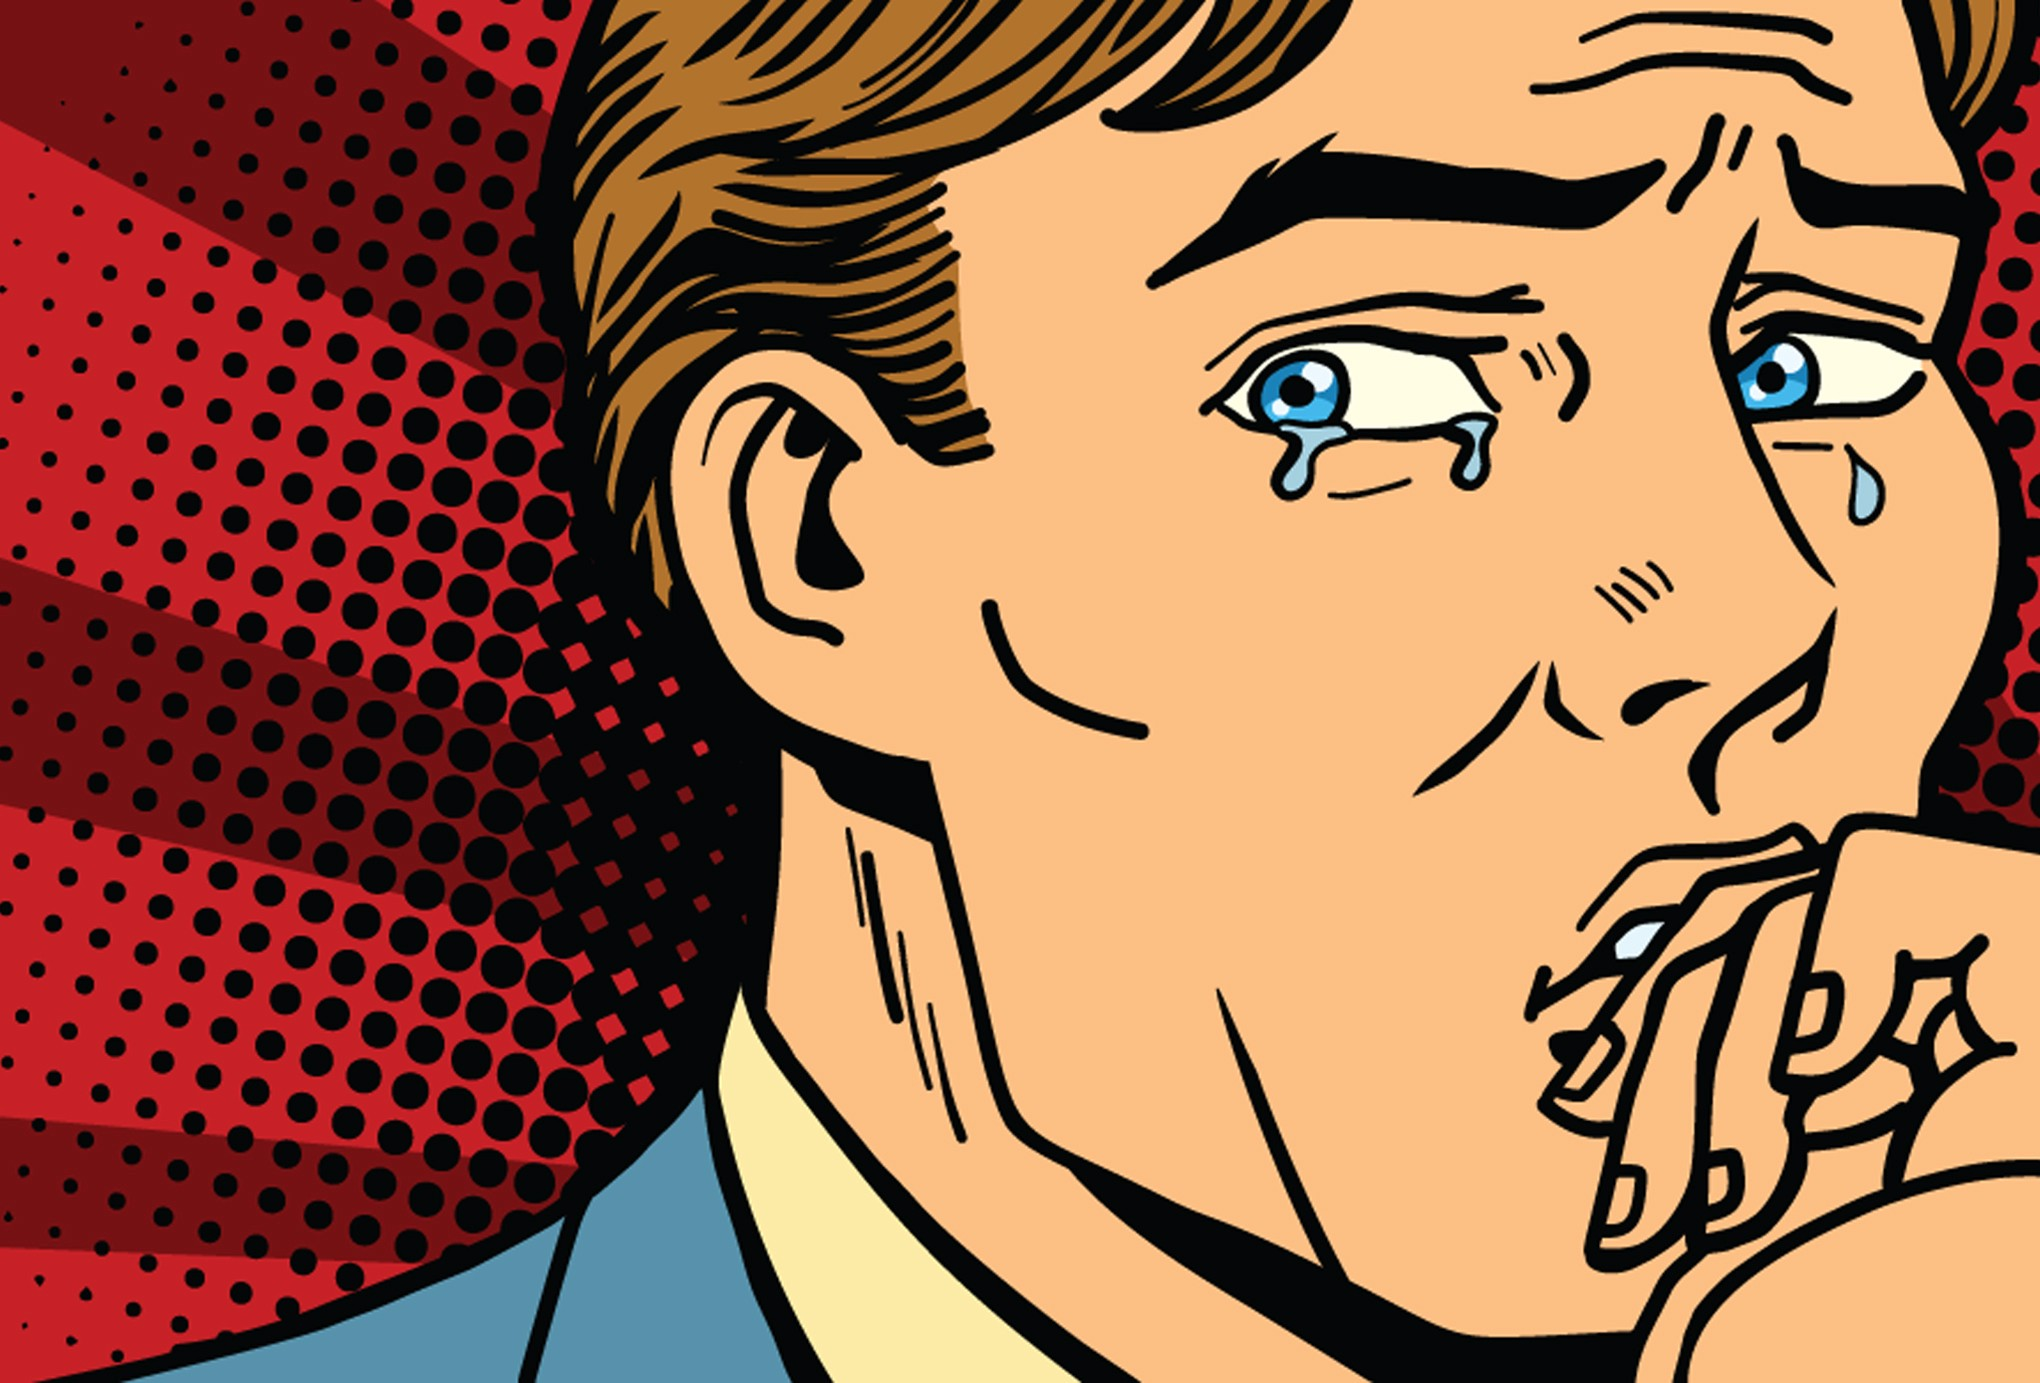 Retro style comic image of professional looking white man crying.